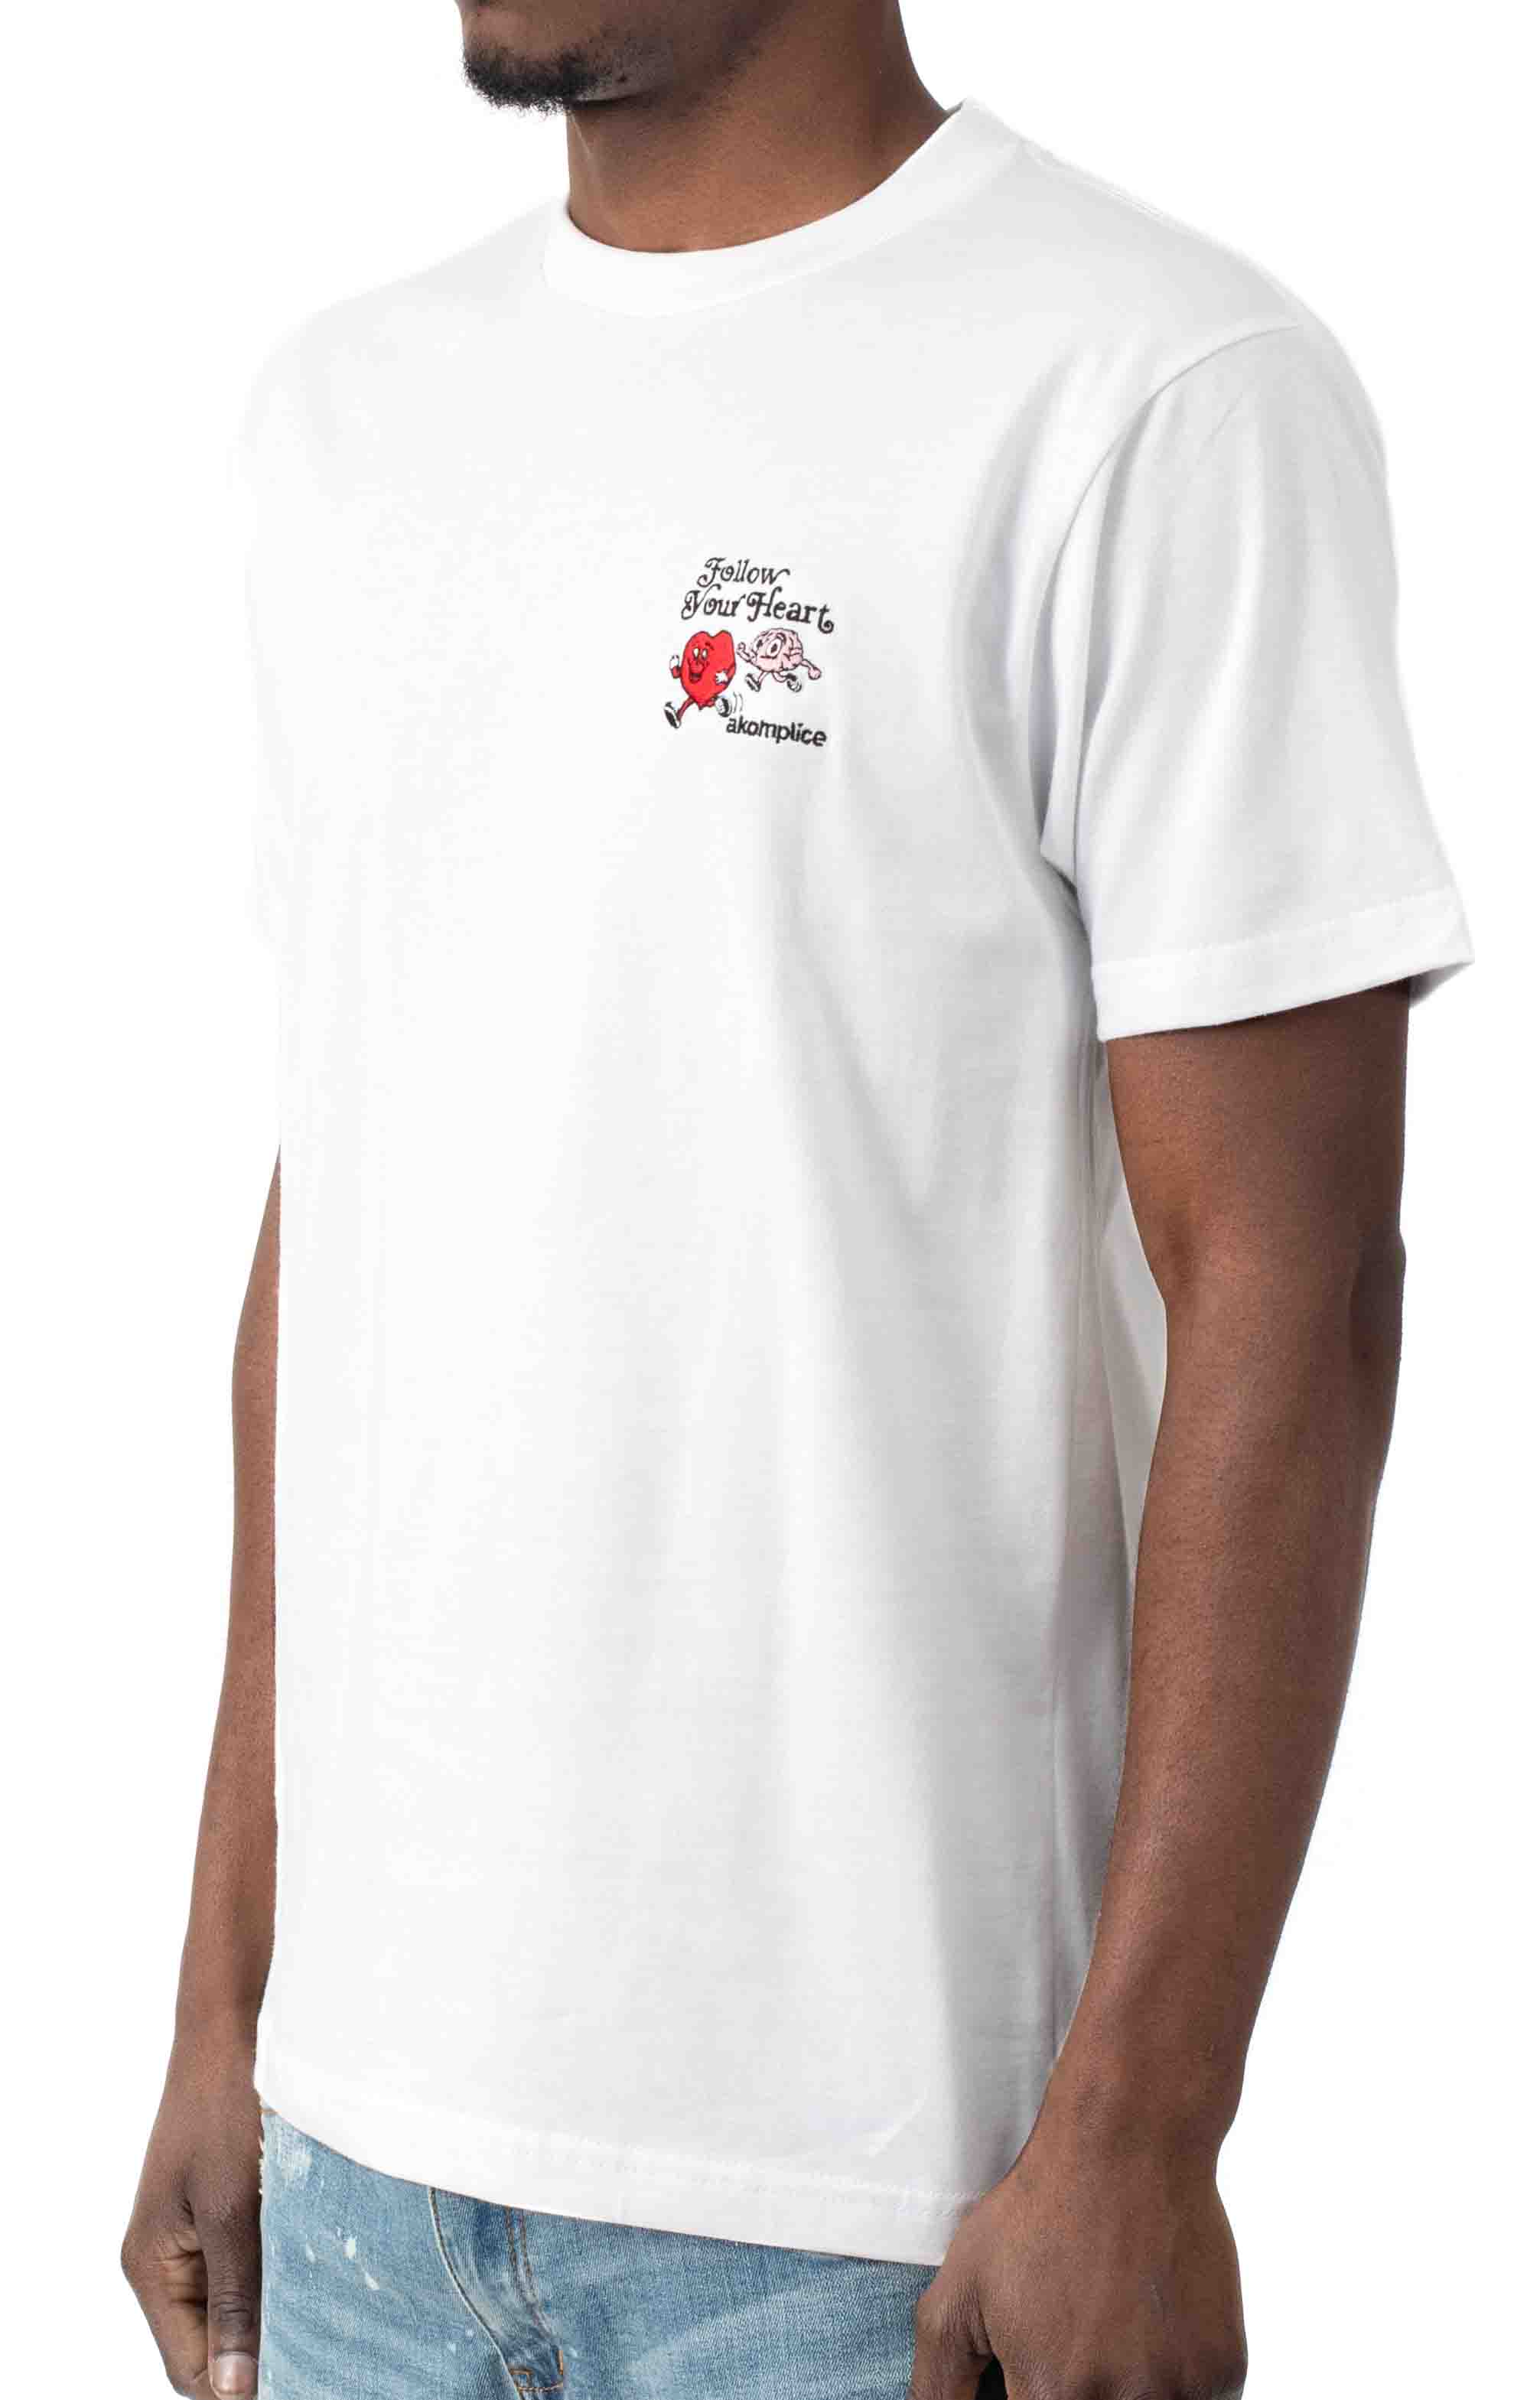 Follow Your Heart Embroidered T-Shirt - White  2